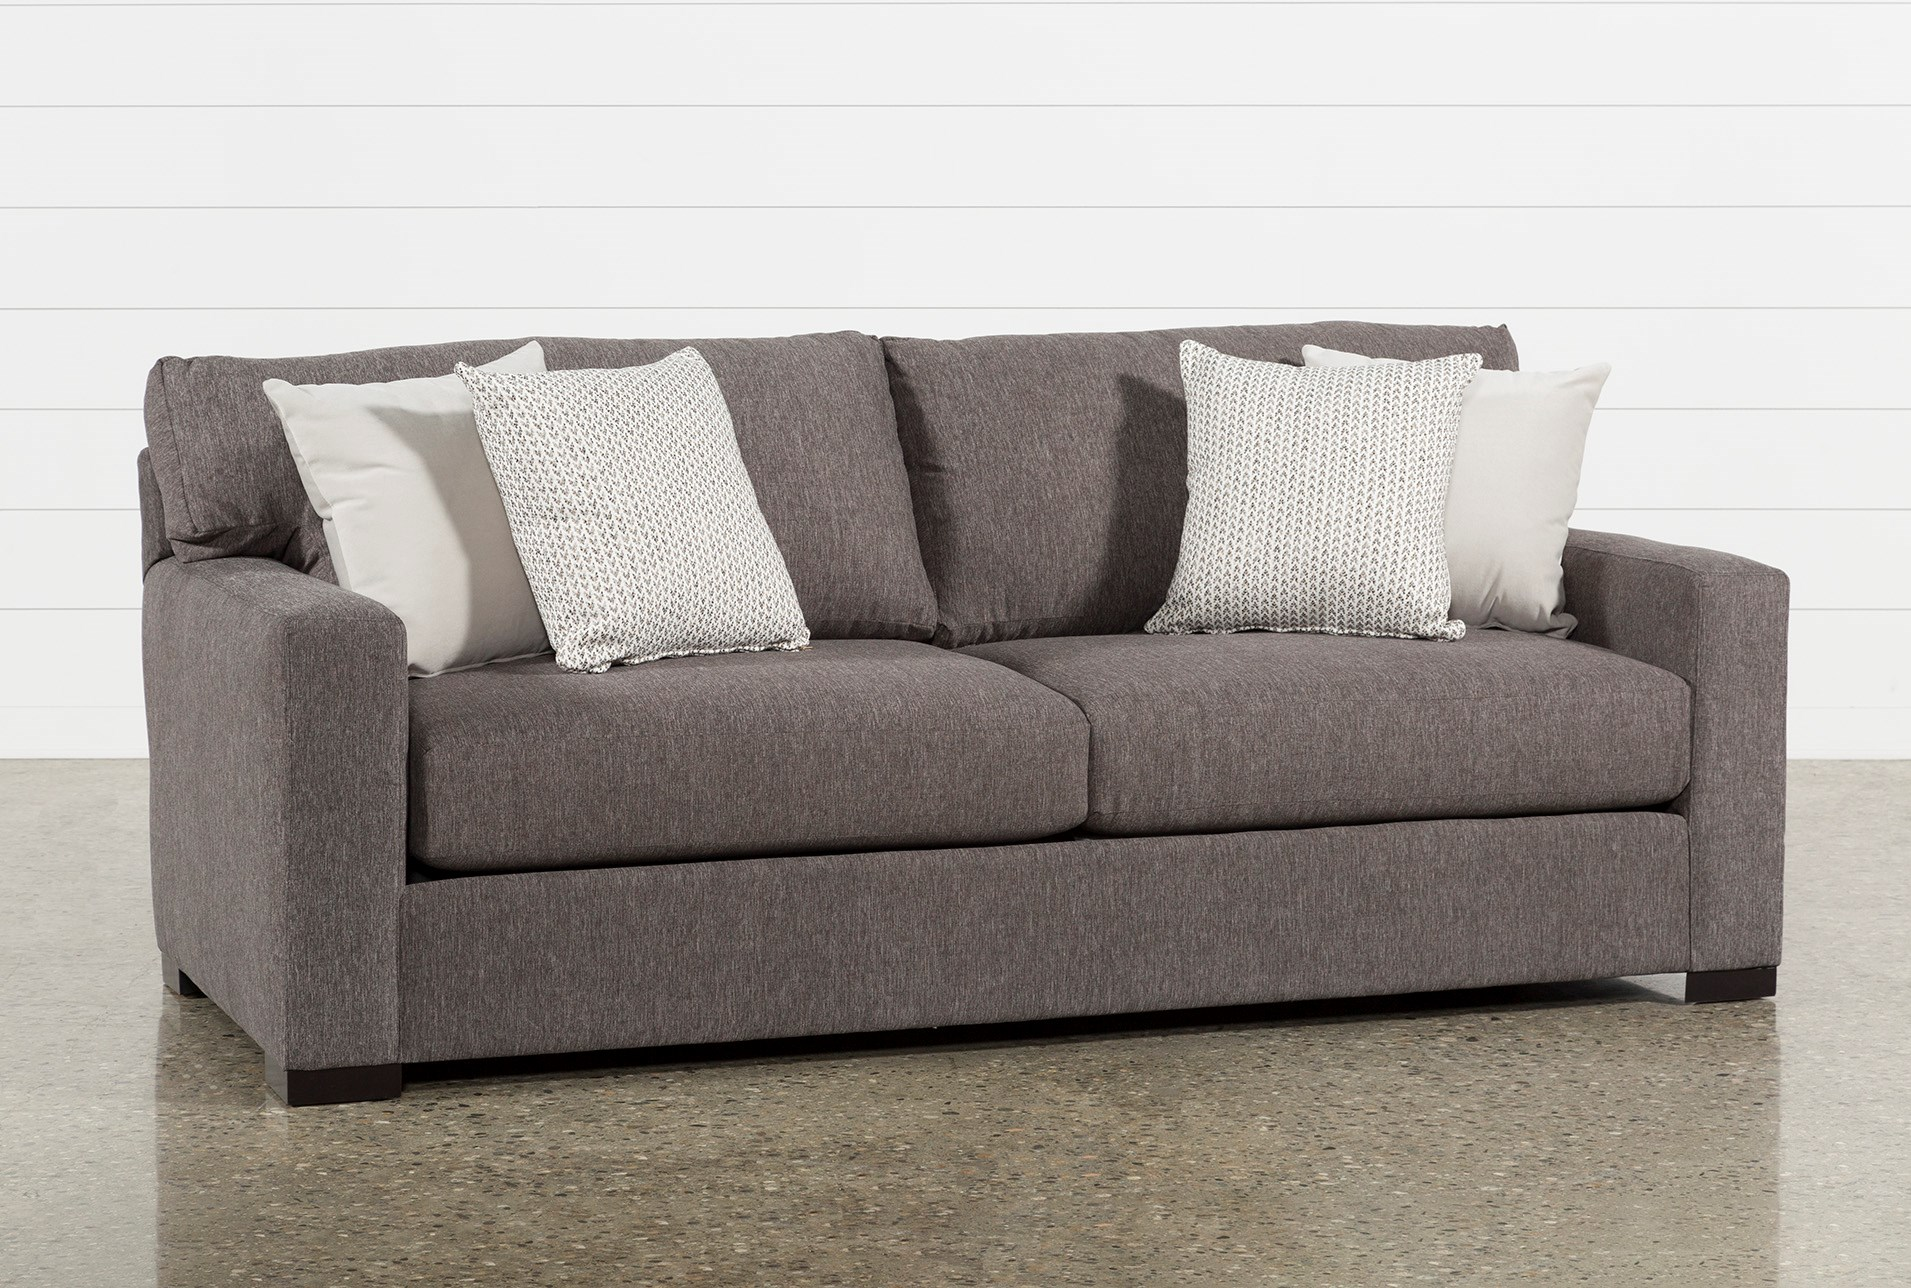 Mercer Foam Condo Sofa